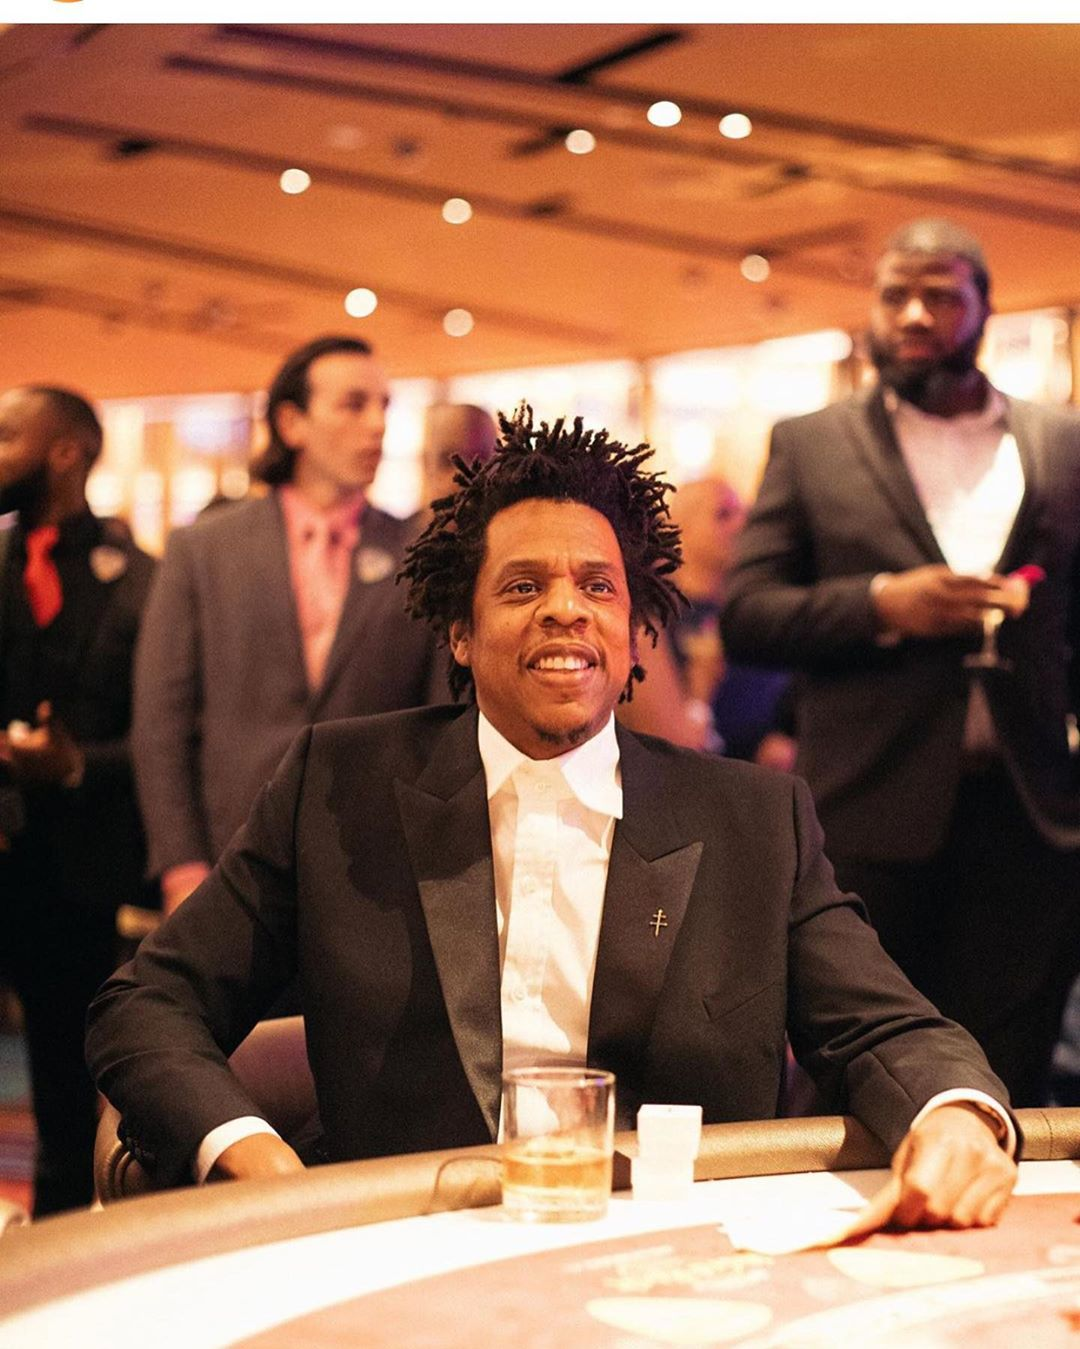 Read more about the article Jay-Z has become the first hip-hop artist to become a billionaire, according to the new cover story in Forbes.